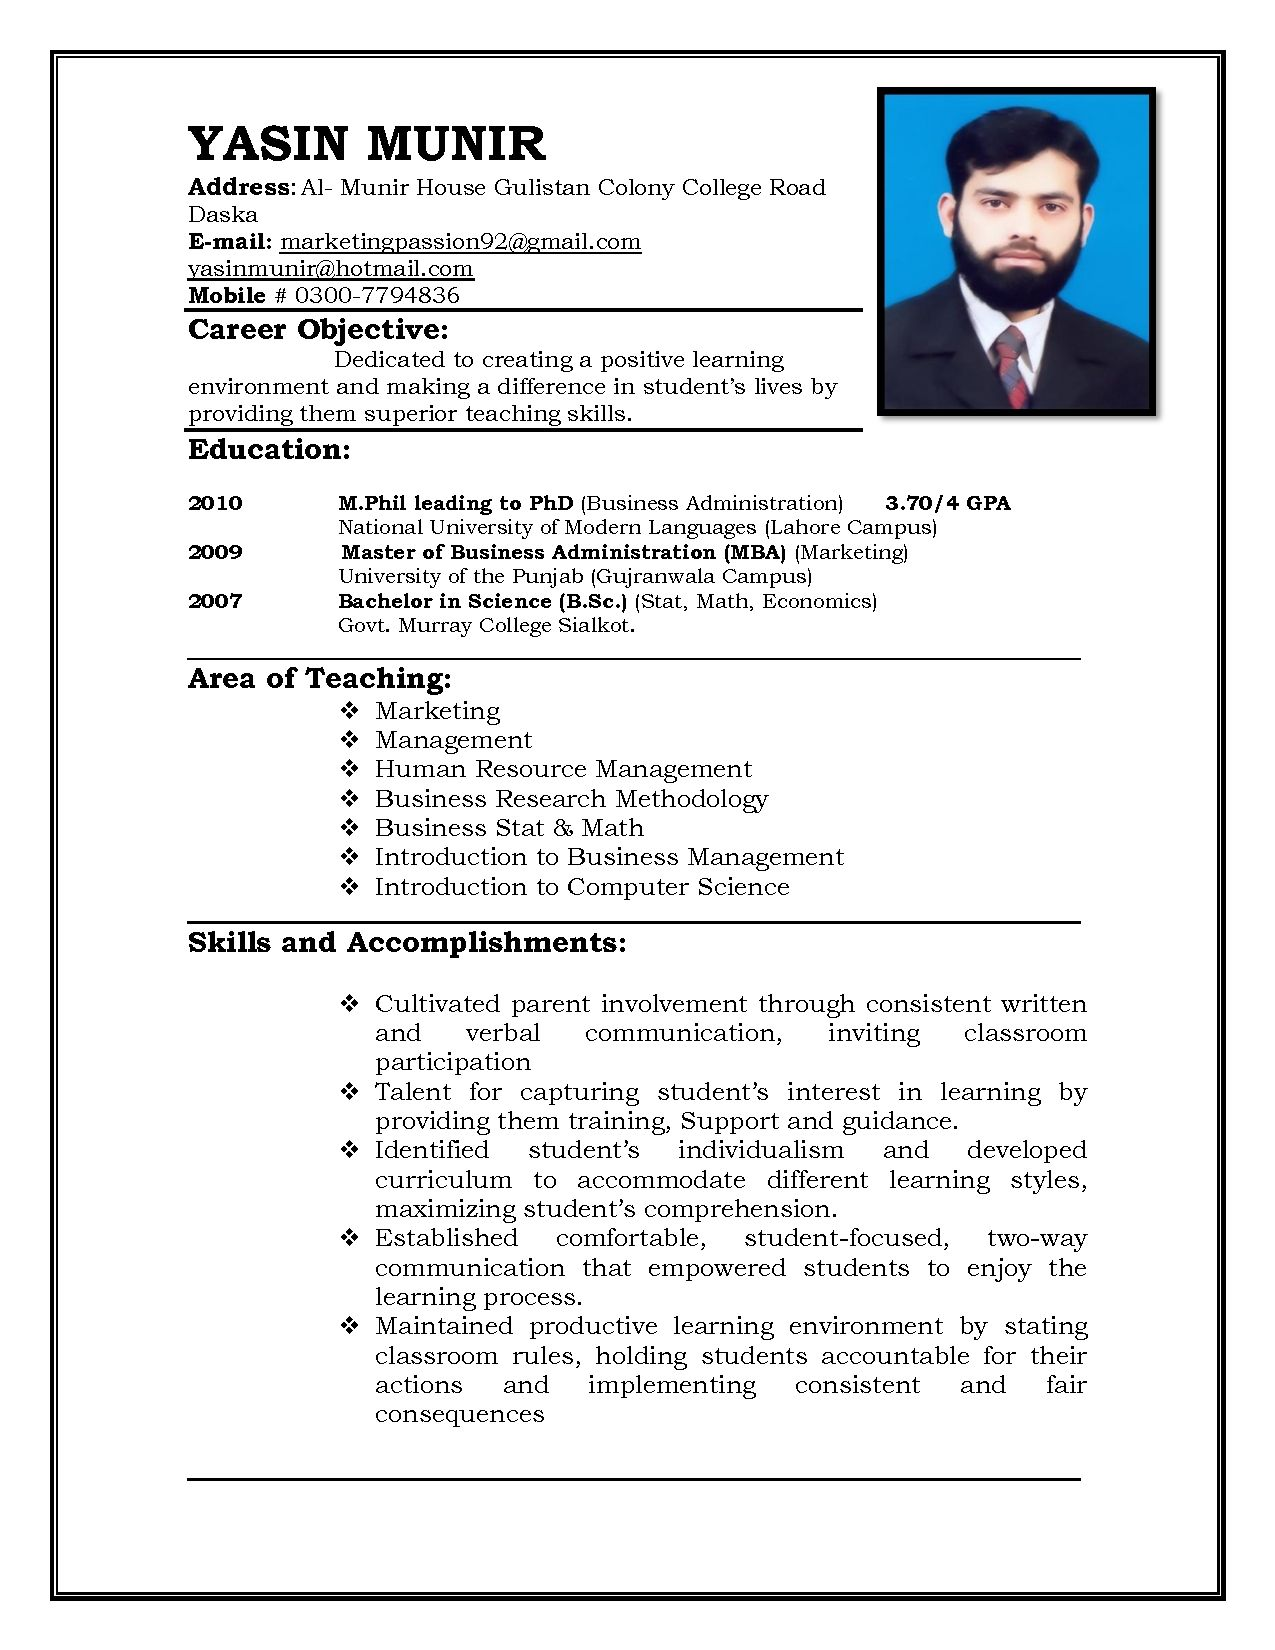 teacher job resume format math teacher resume sample free for teachers temp mdxar job resumes samples for teachers pdf resume format resume template - Teaching Jobs Resume Sample